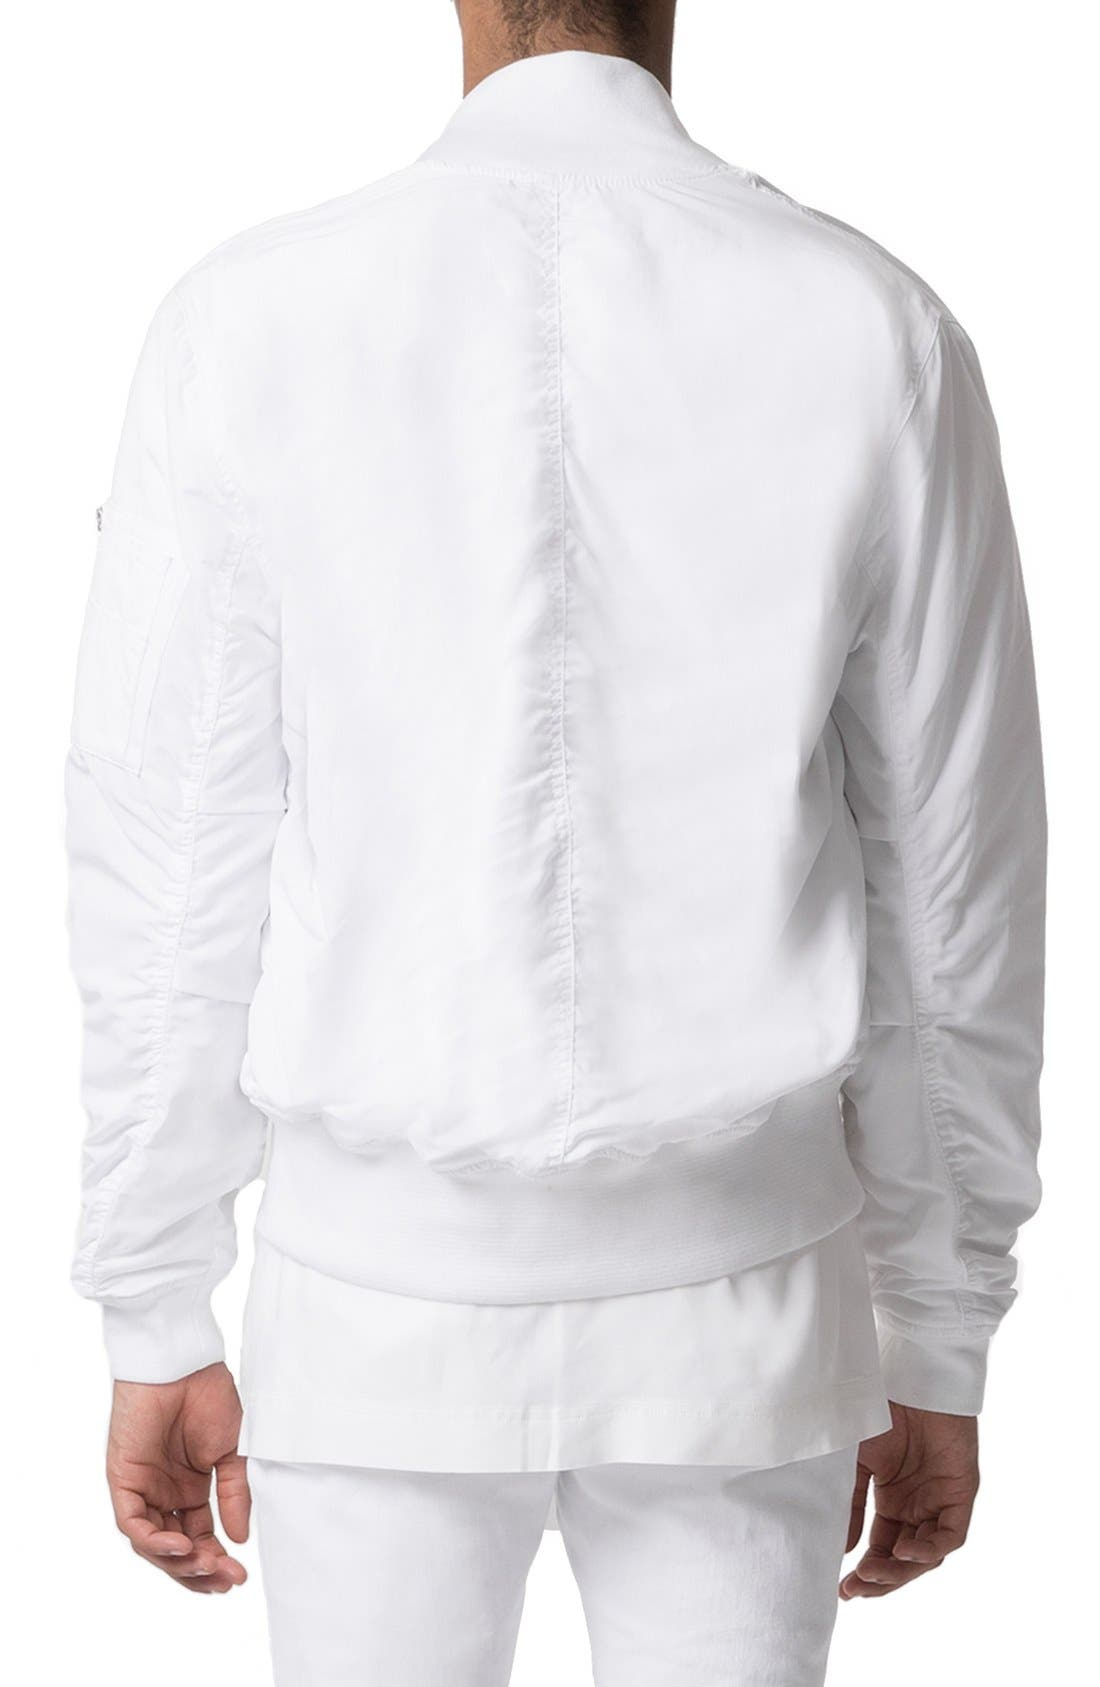 AAA Collection Ruched Back Bomber Jacket,                             Alternate thumbnail 4, color,                             100